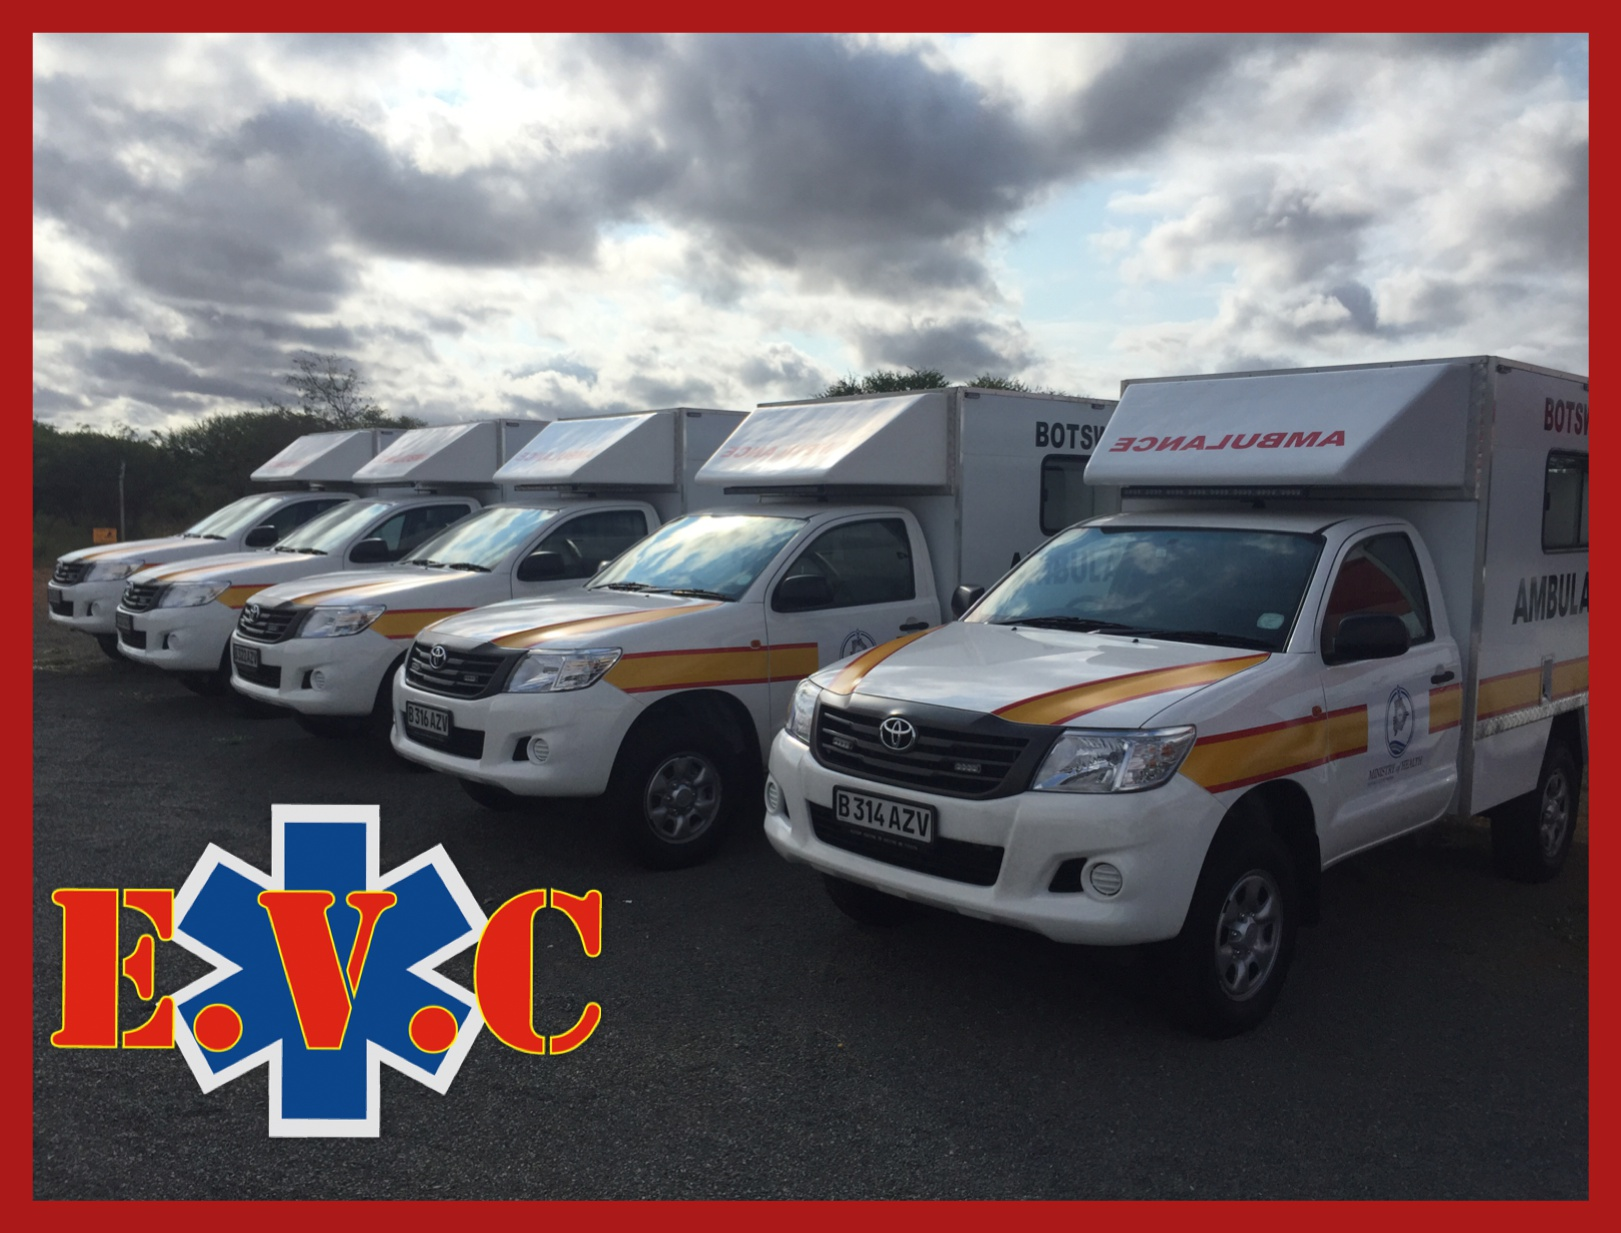 25 Box Body Ambulances being delivered to Botswana MOH